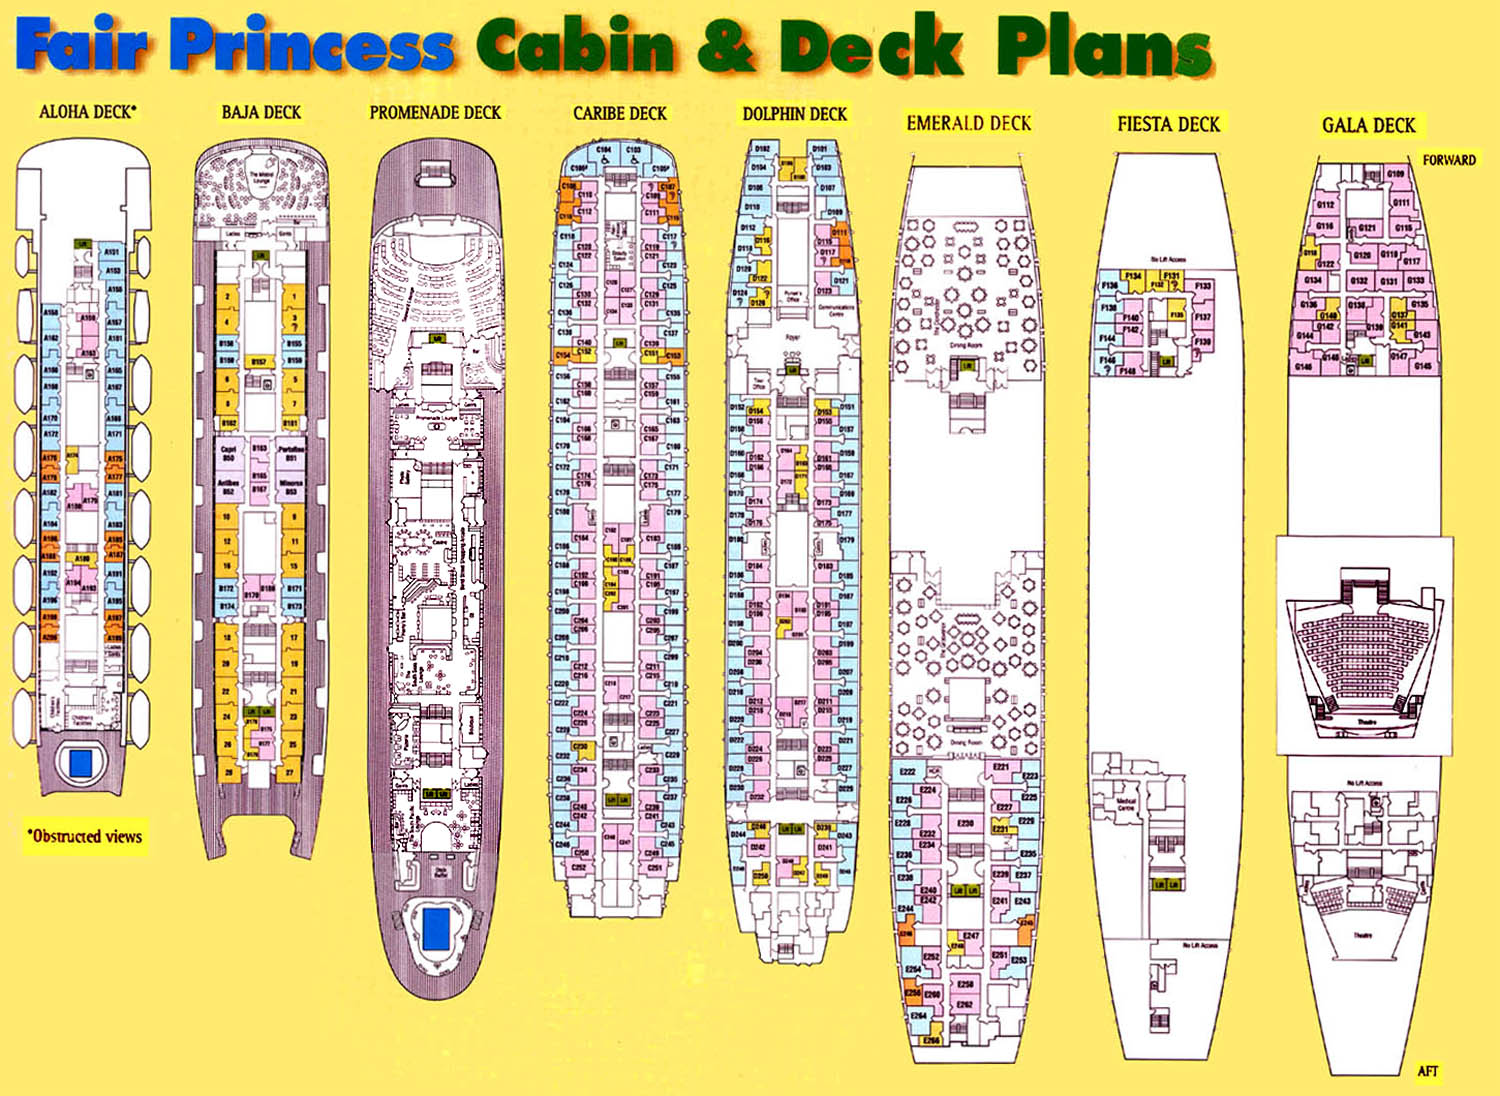 Sitrmar cruises tss fairsea fairwind of 1971 72 deck plans remembering two magnificent and genuine classic cruise ships the baanklon Choice Image